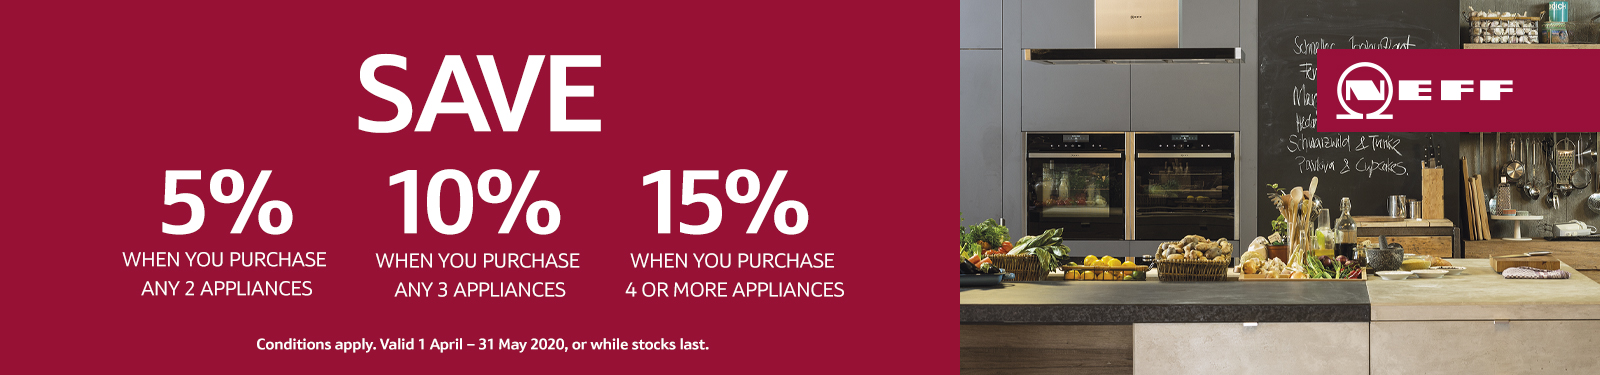 Neff Save up to 15% when you purchase 4 or more appliances